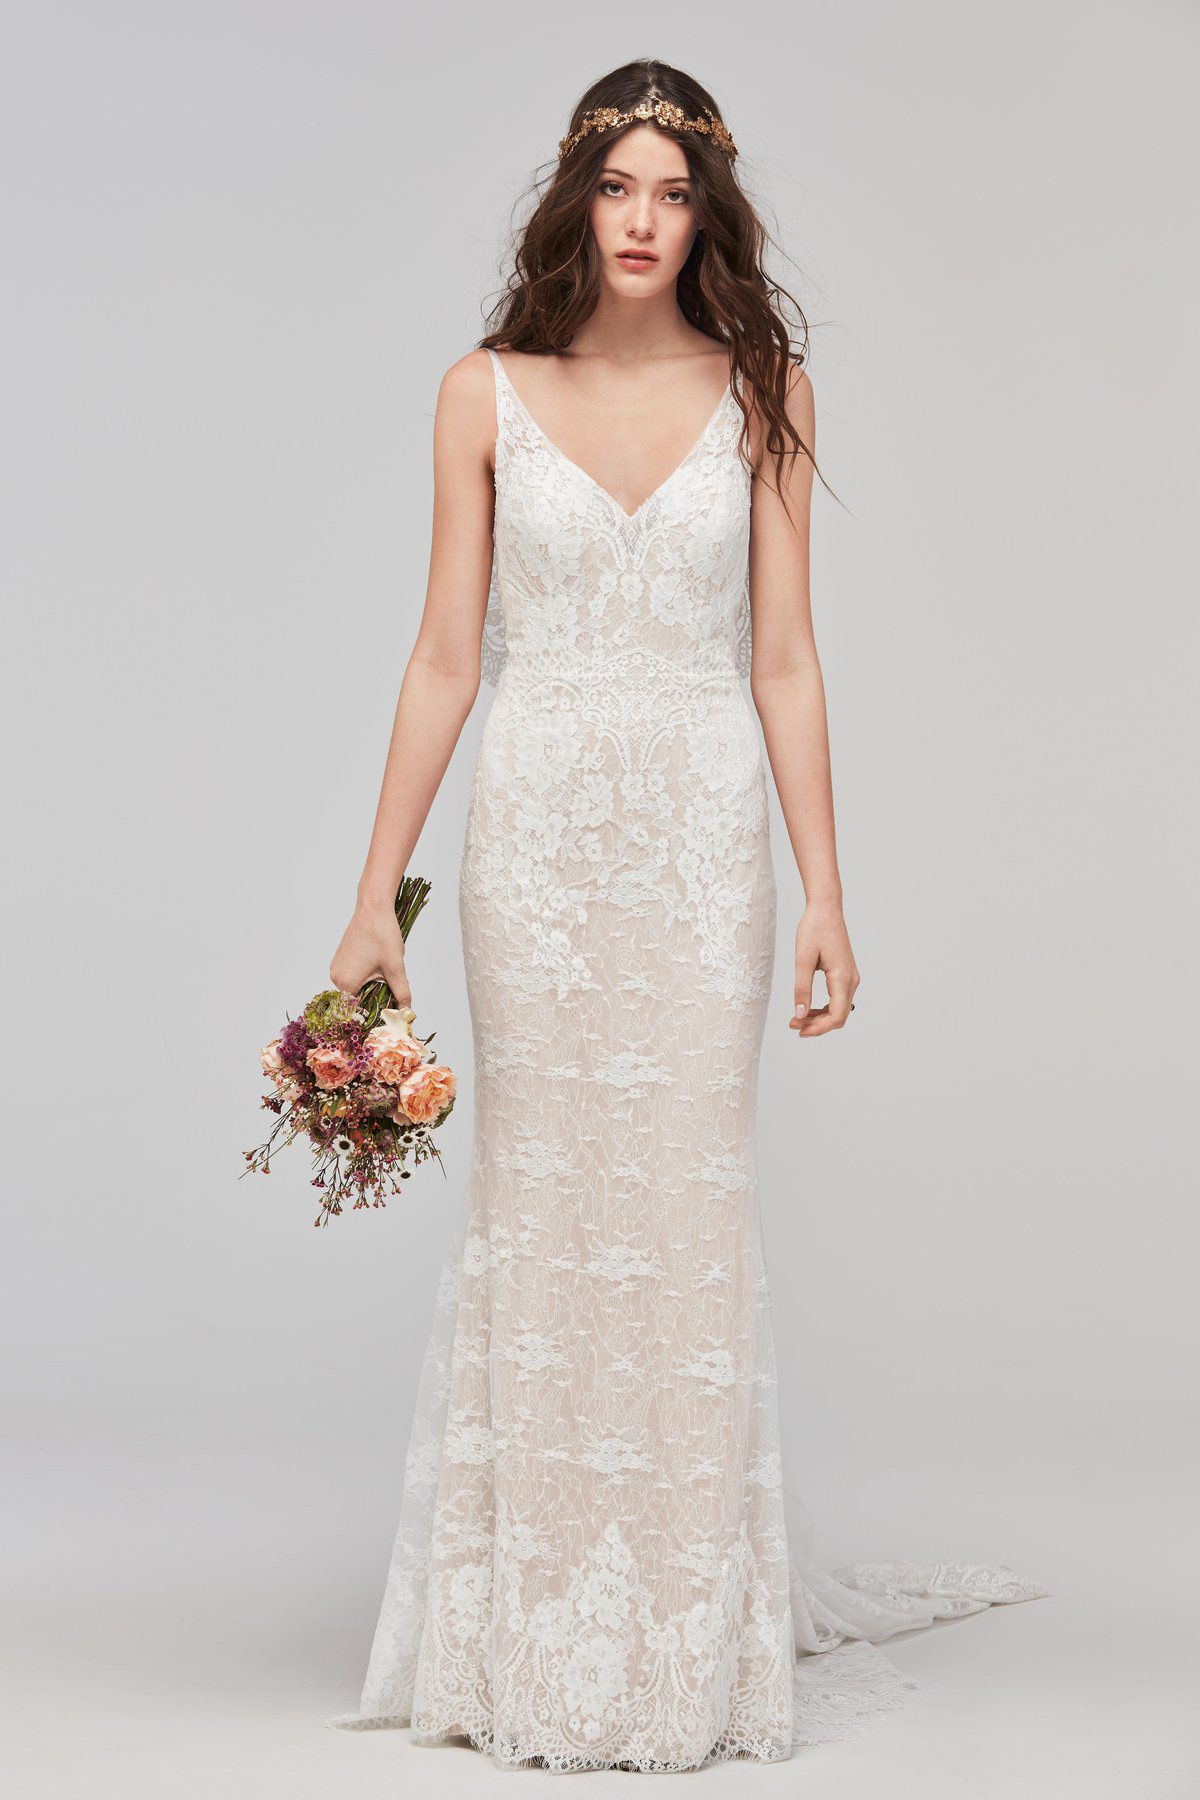 Available at wildflower bridal wildflower bridal current gowns